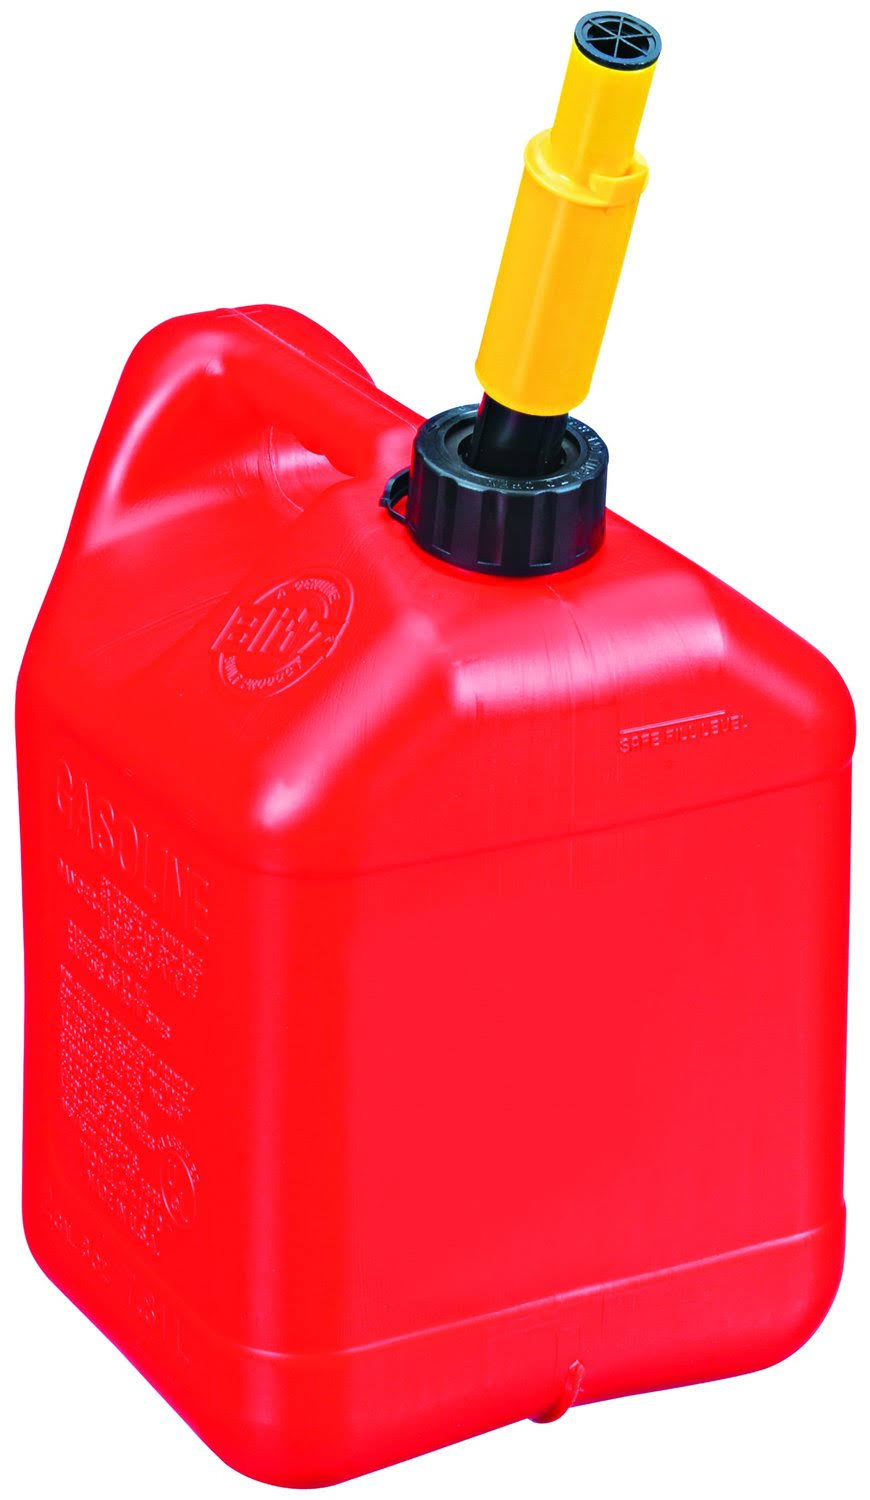 Midwest 2310 Portable High Density Polyethylene Gas Can - Red, 2gal